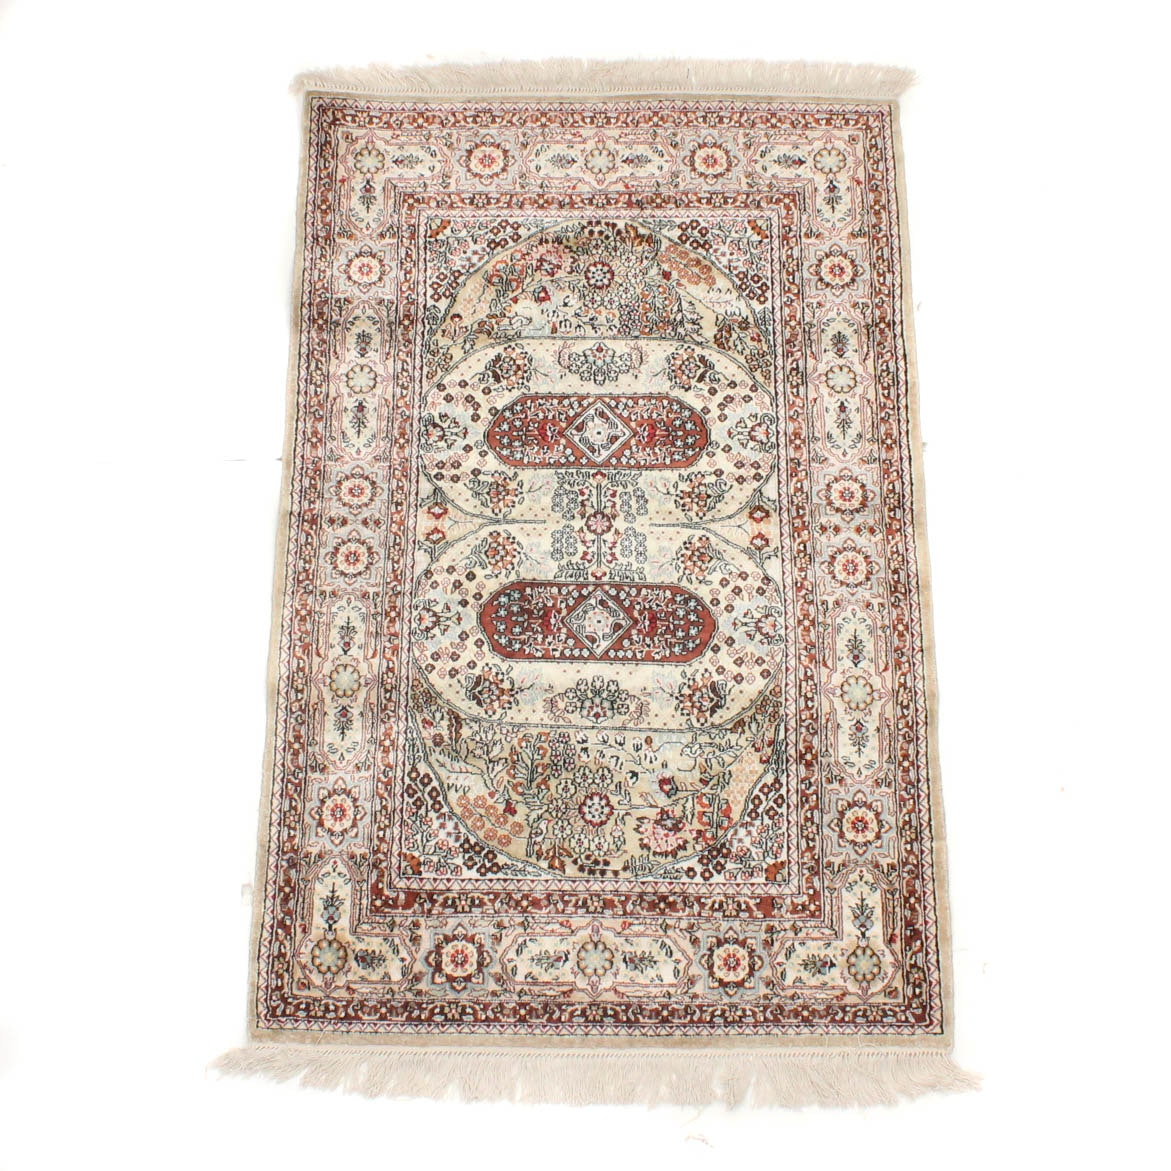 3' x 4' Hand-Knotted Pure Silk Sino-Persian Tabriz Rug